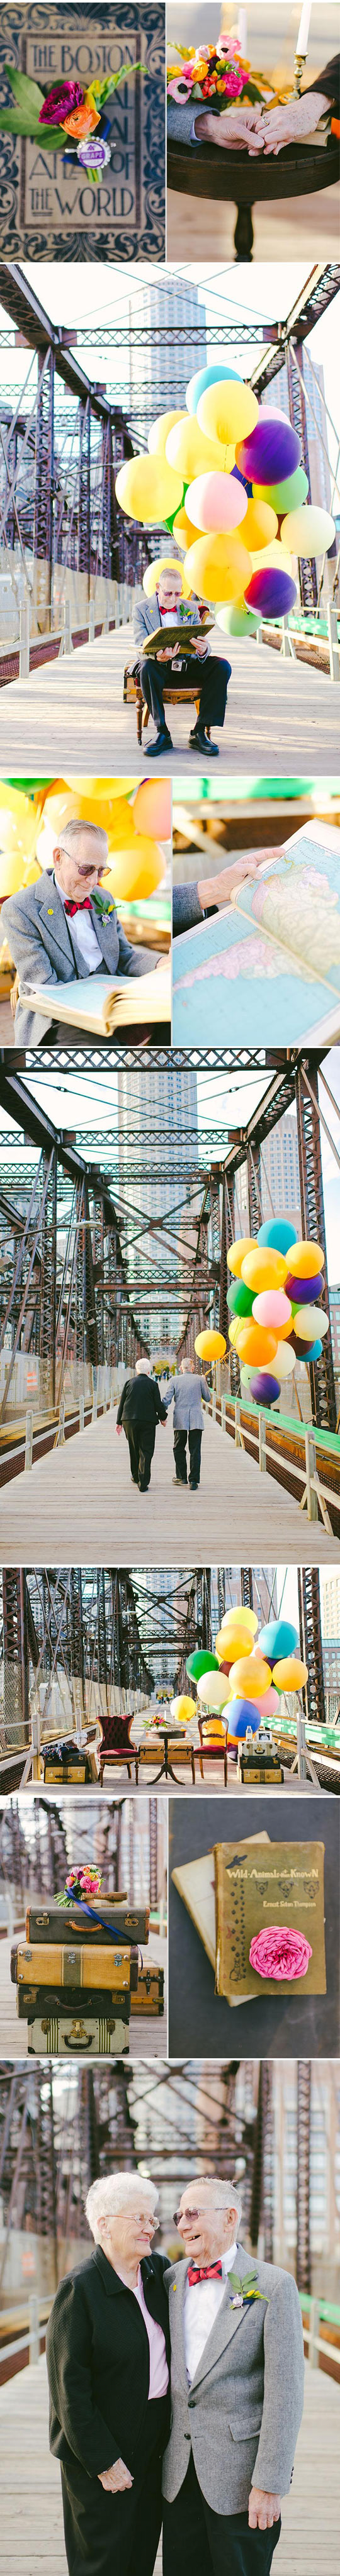 cool-couple-Up-themed-anniversary-balloons